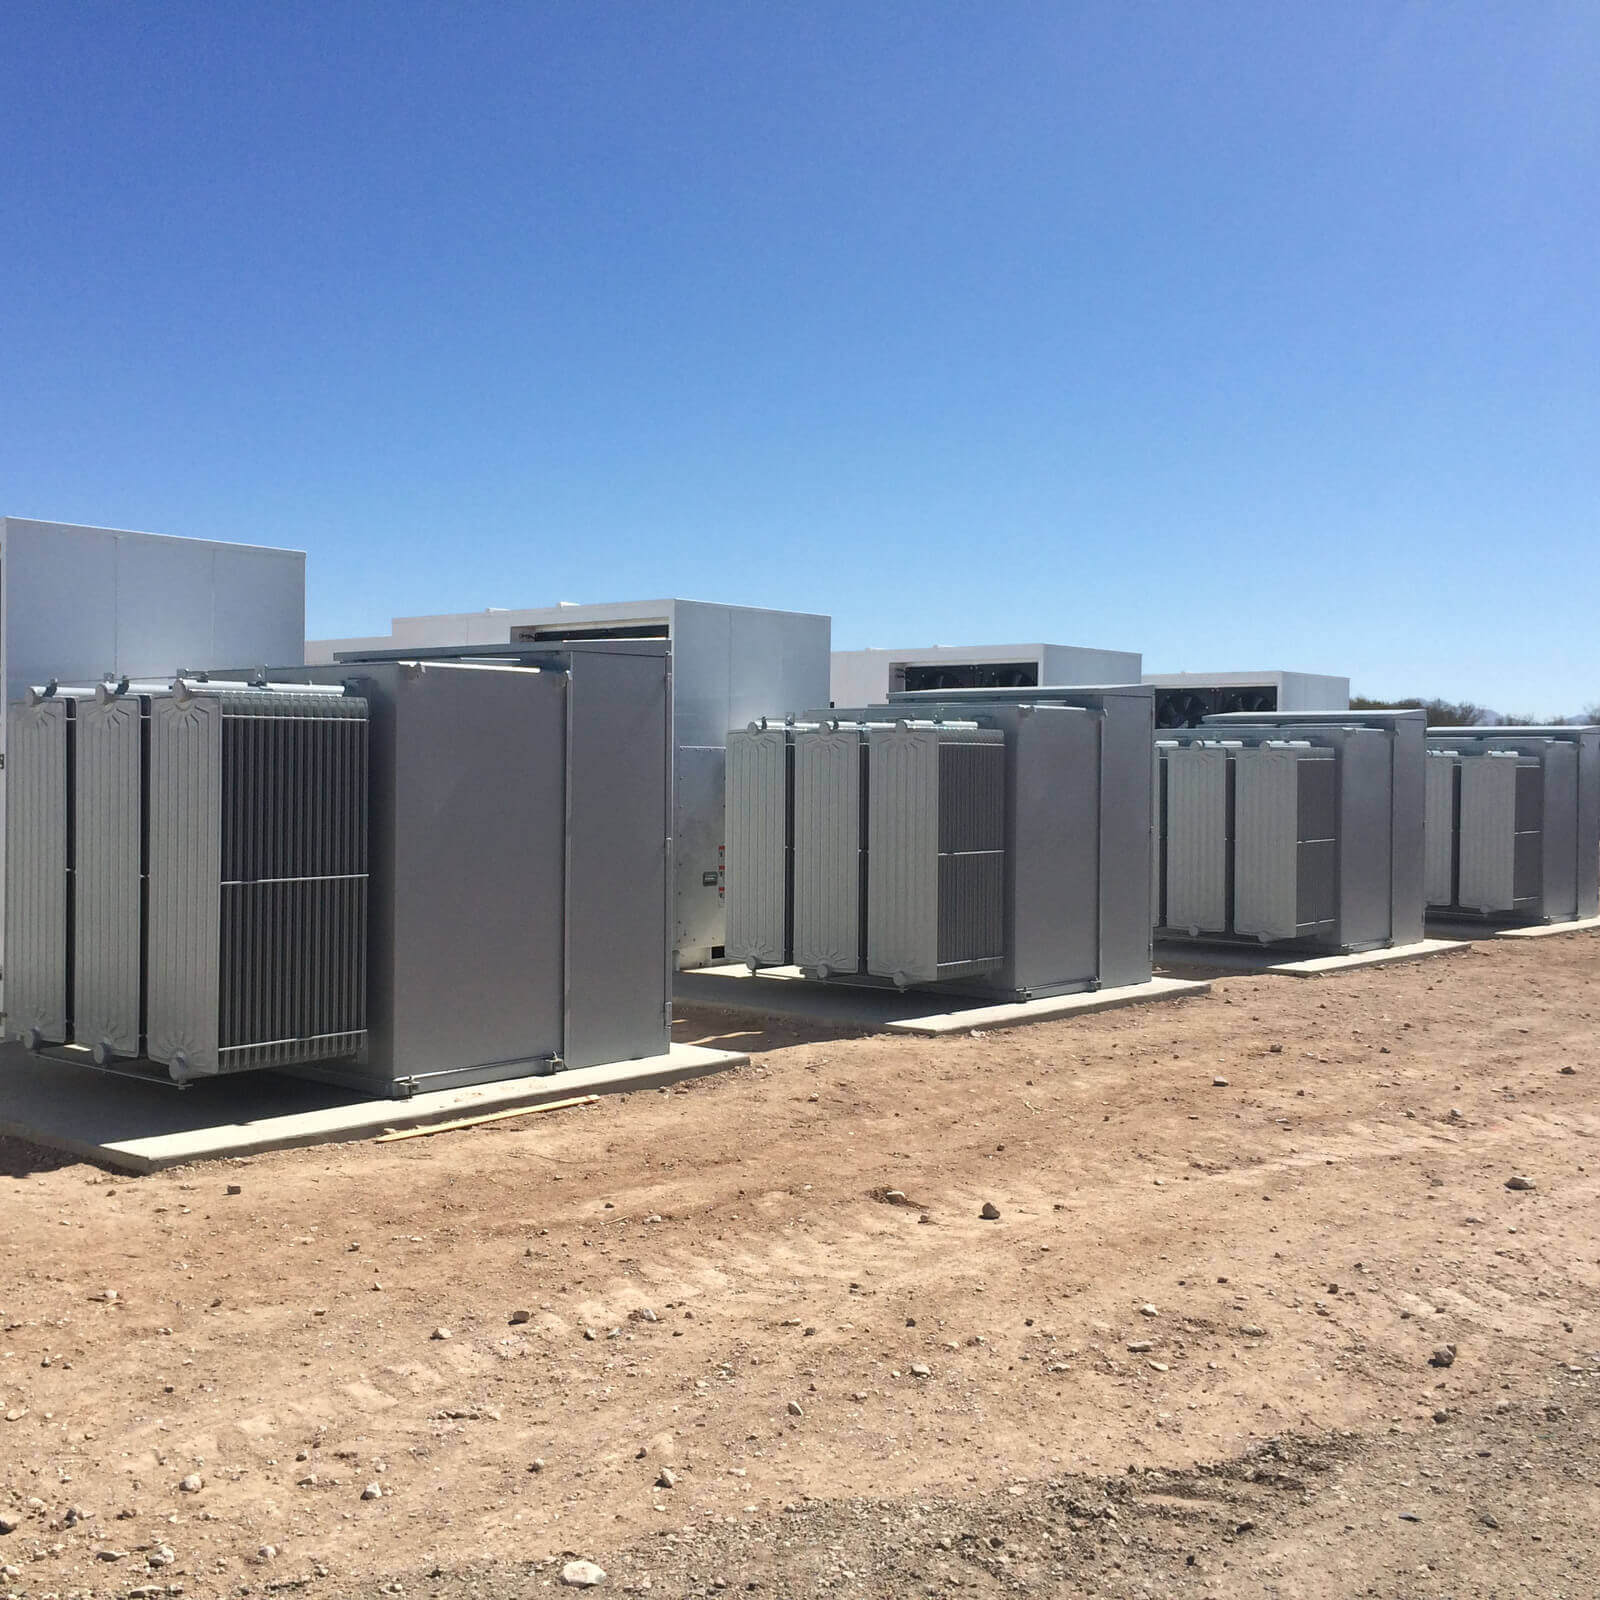 Iron_Horse_energy_storage E.ON Gets To Work On Energy Storage At Texas Wind Farms